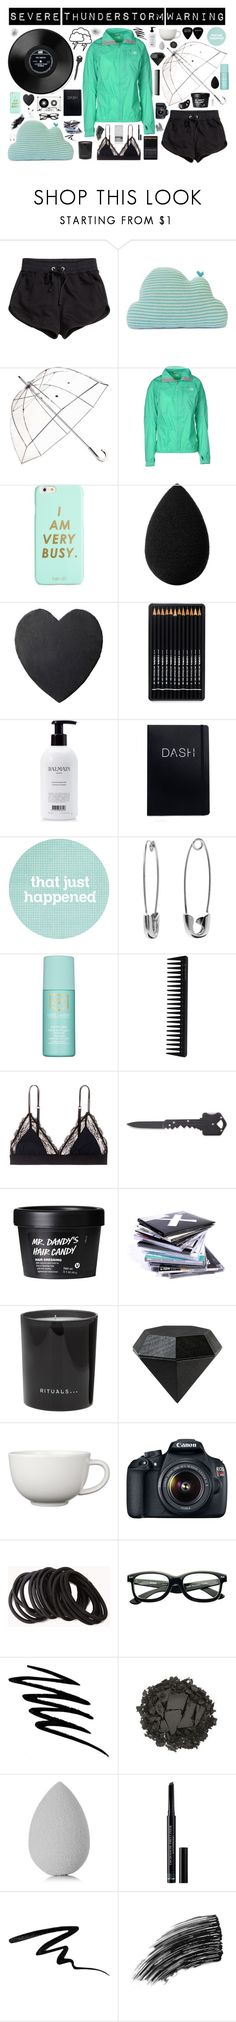 """""""Severe Thunderstorm warning"""" by canary-coronaries ❤ liked on Polyvore featuring H&M, Totes, The North Face, ban.do, beautyblender, Balmain, Banana Republic, Estée Lauder, GHD and LoveStories"""